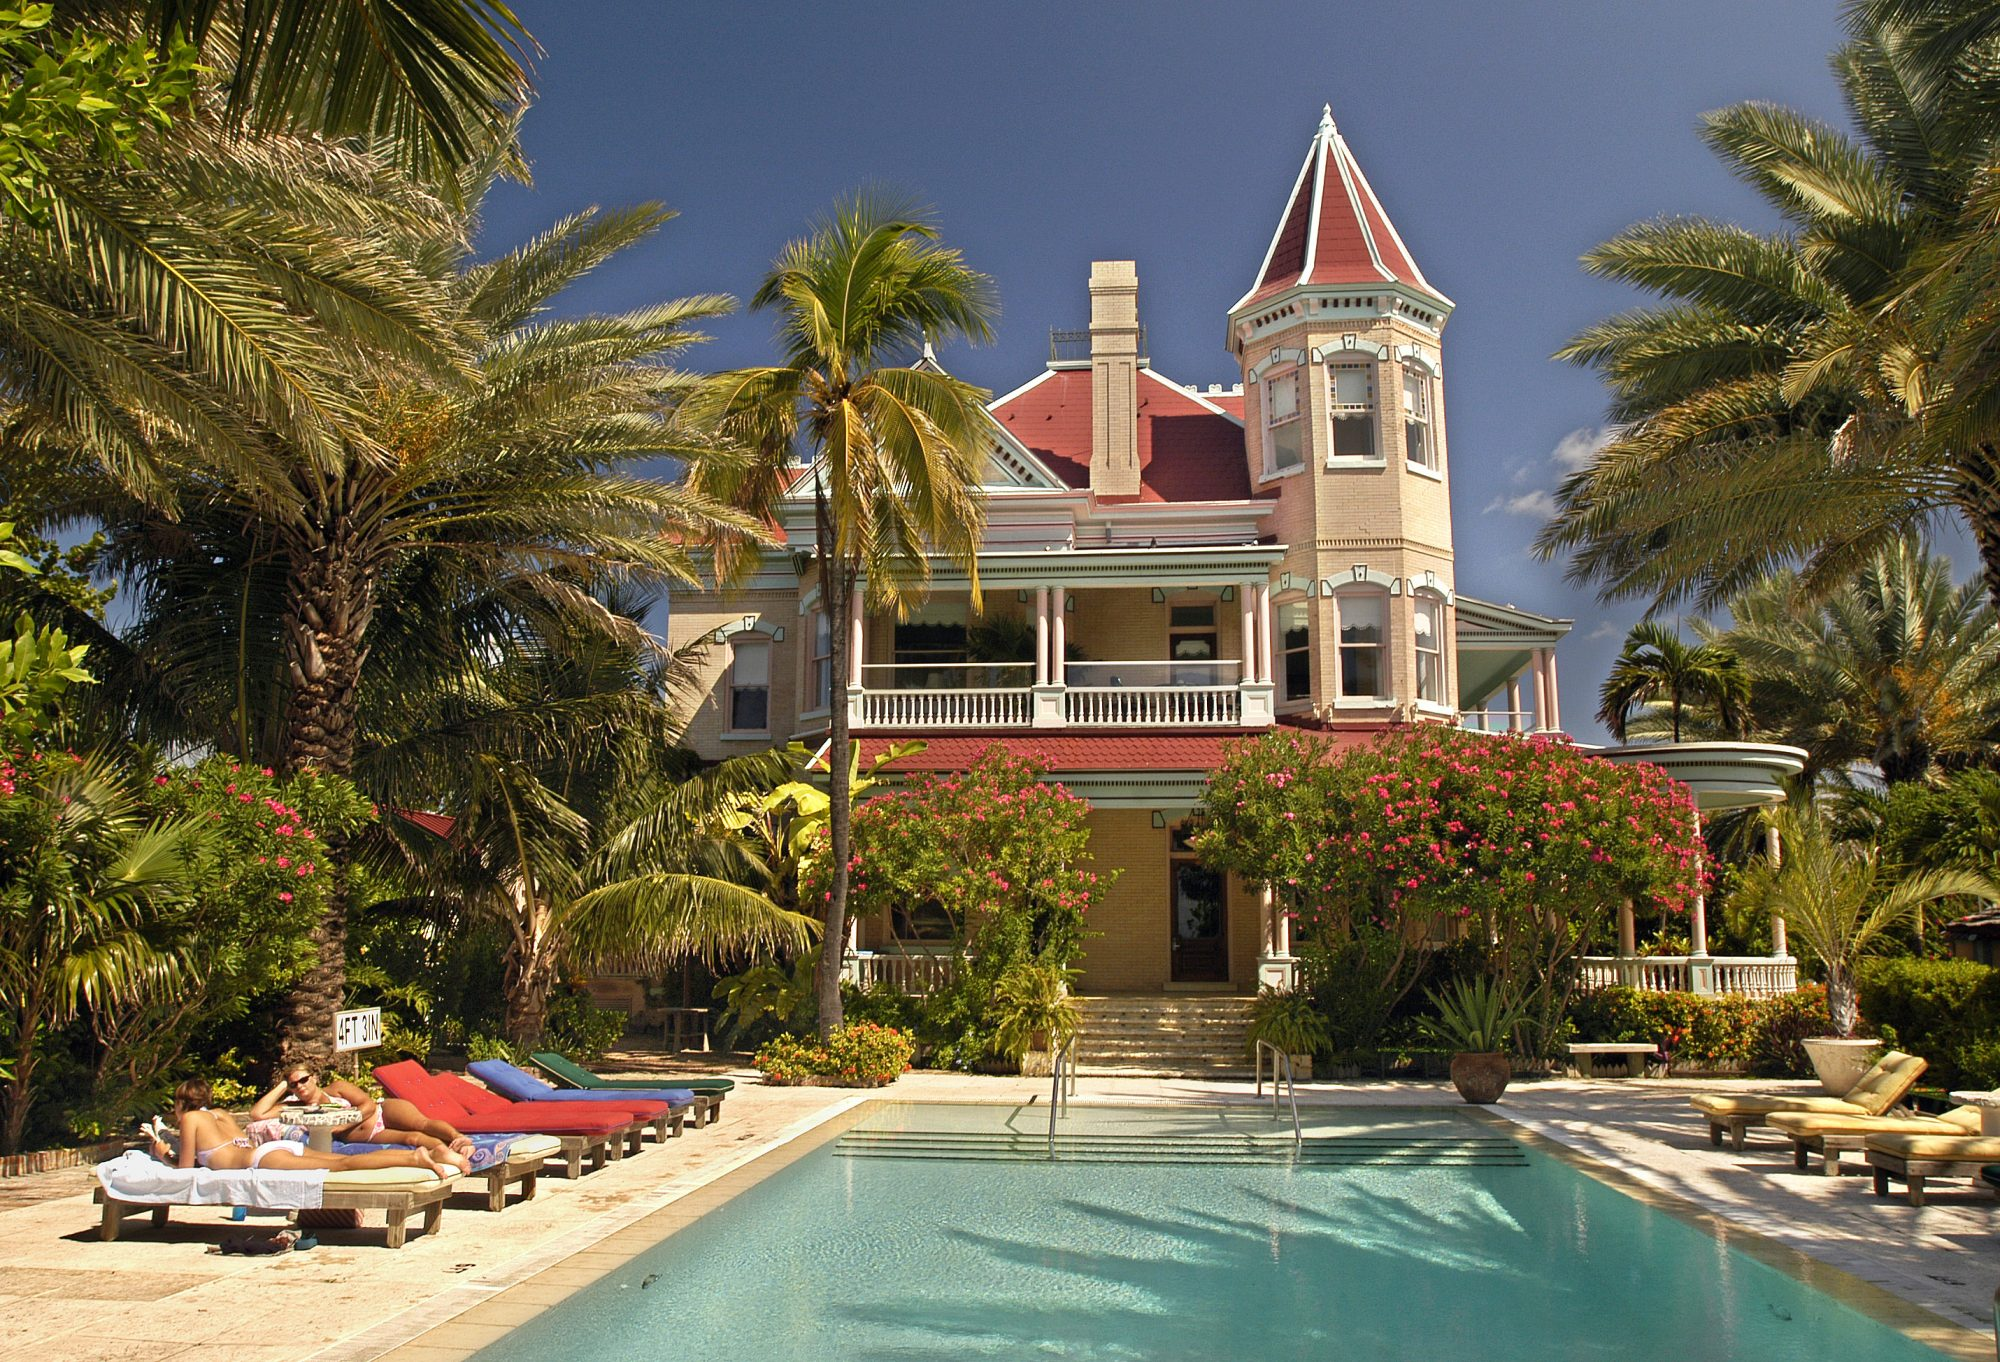 Near the end of the 19th century, wealthy business owners began constructing pastel-colored Victorian mansions that many today describe as Key West-style architecture. Spend the night in one of these historic homes and book a room at the Southernmost Hous